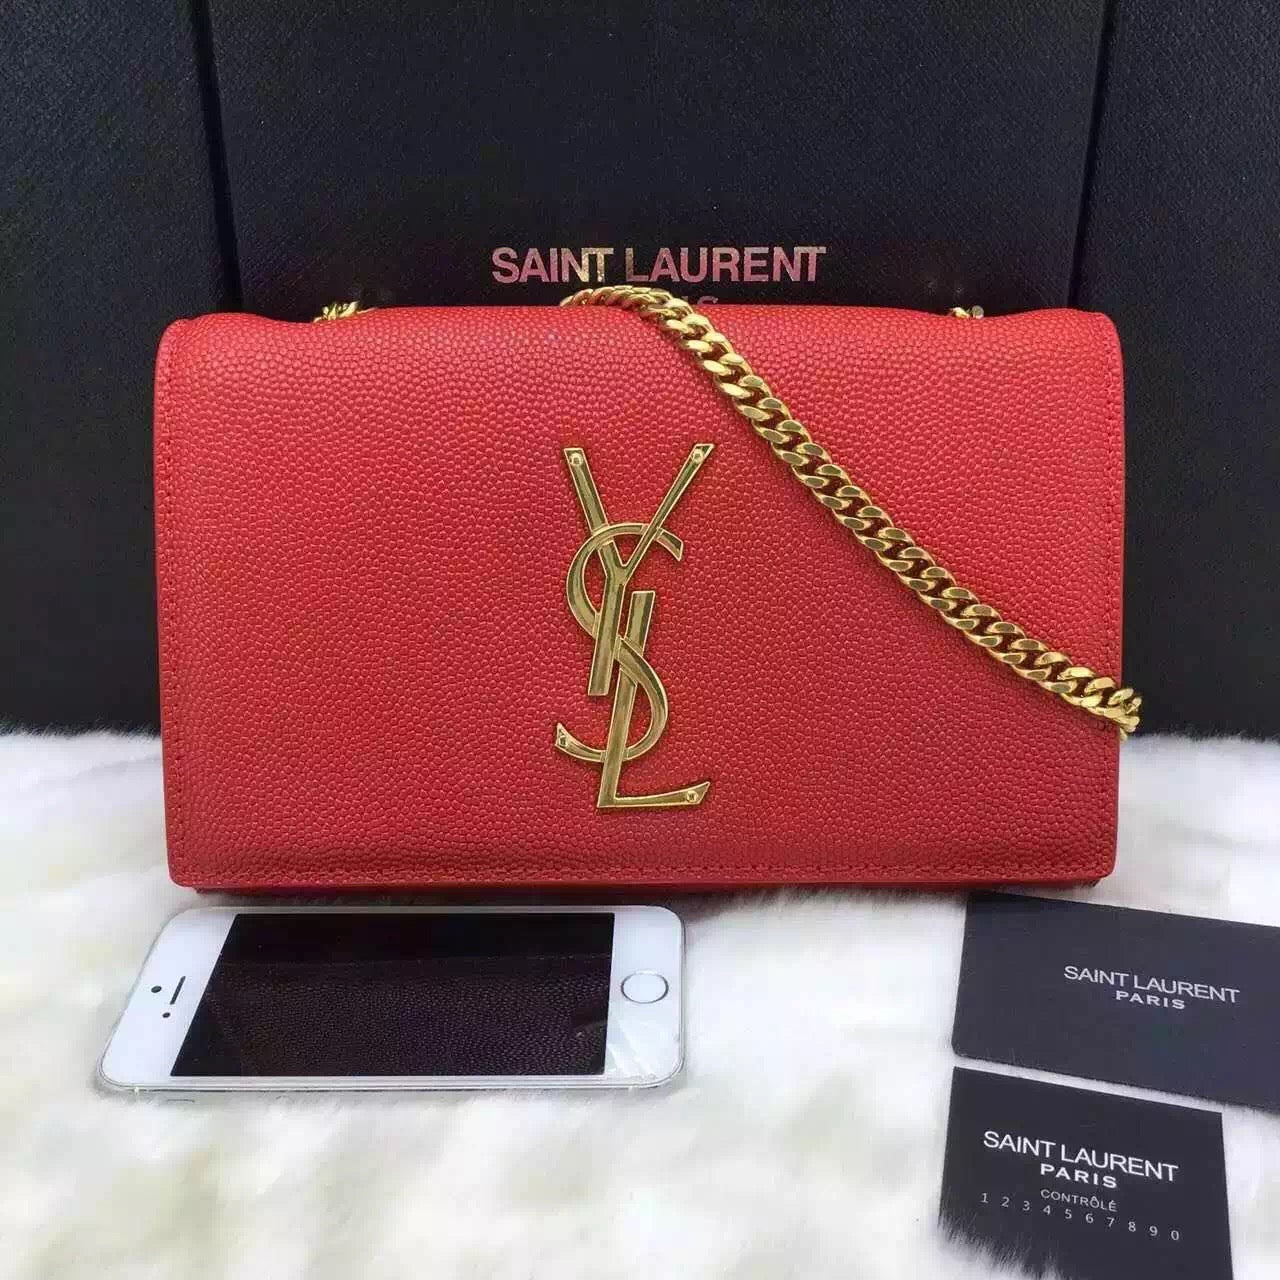 Bolsa Satchel Powder Kate YSL Saint Laurent - Loja Must Have